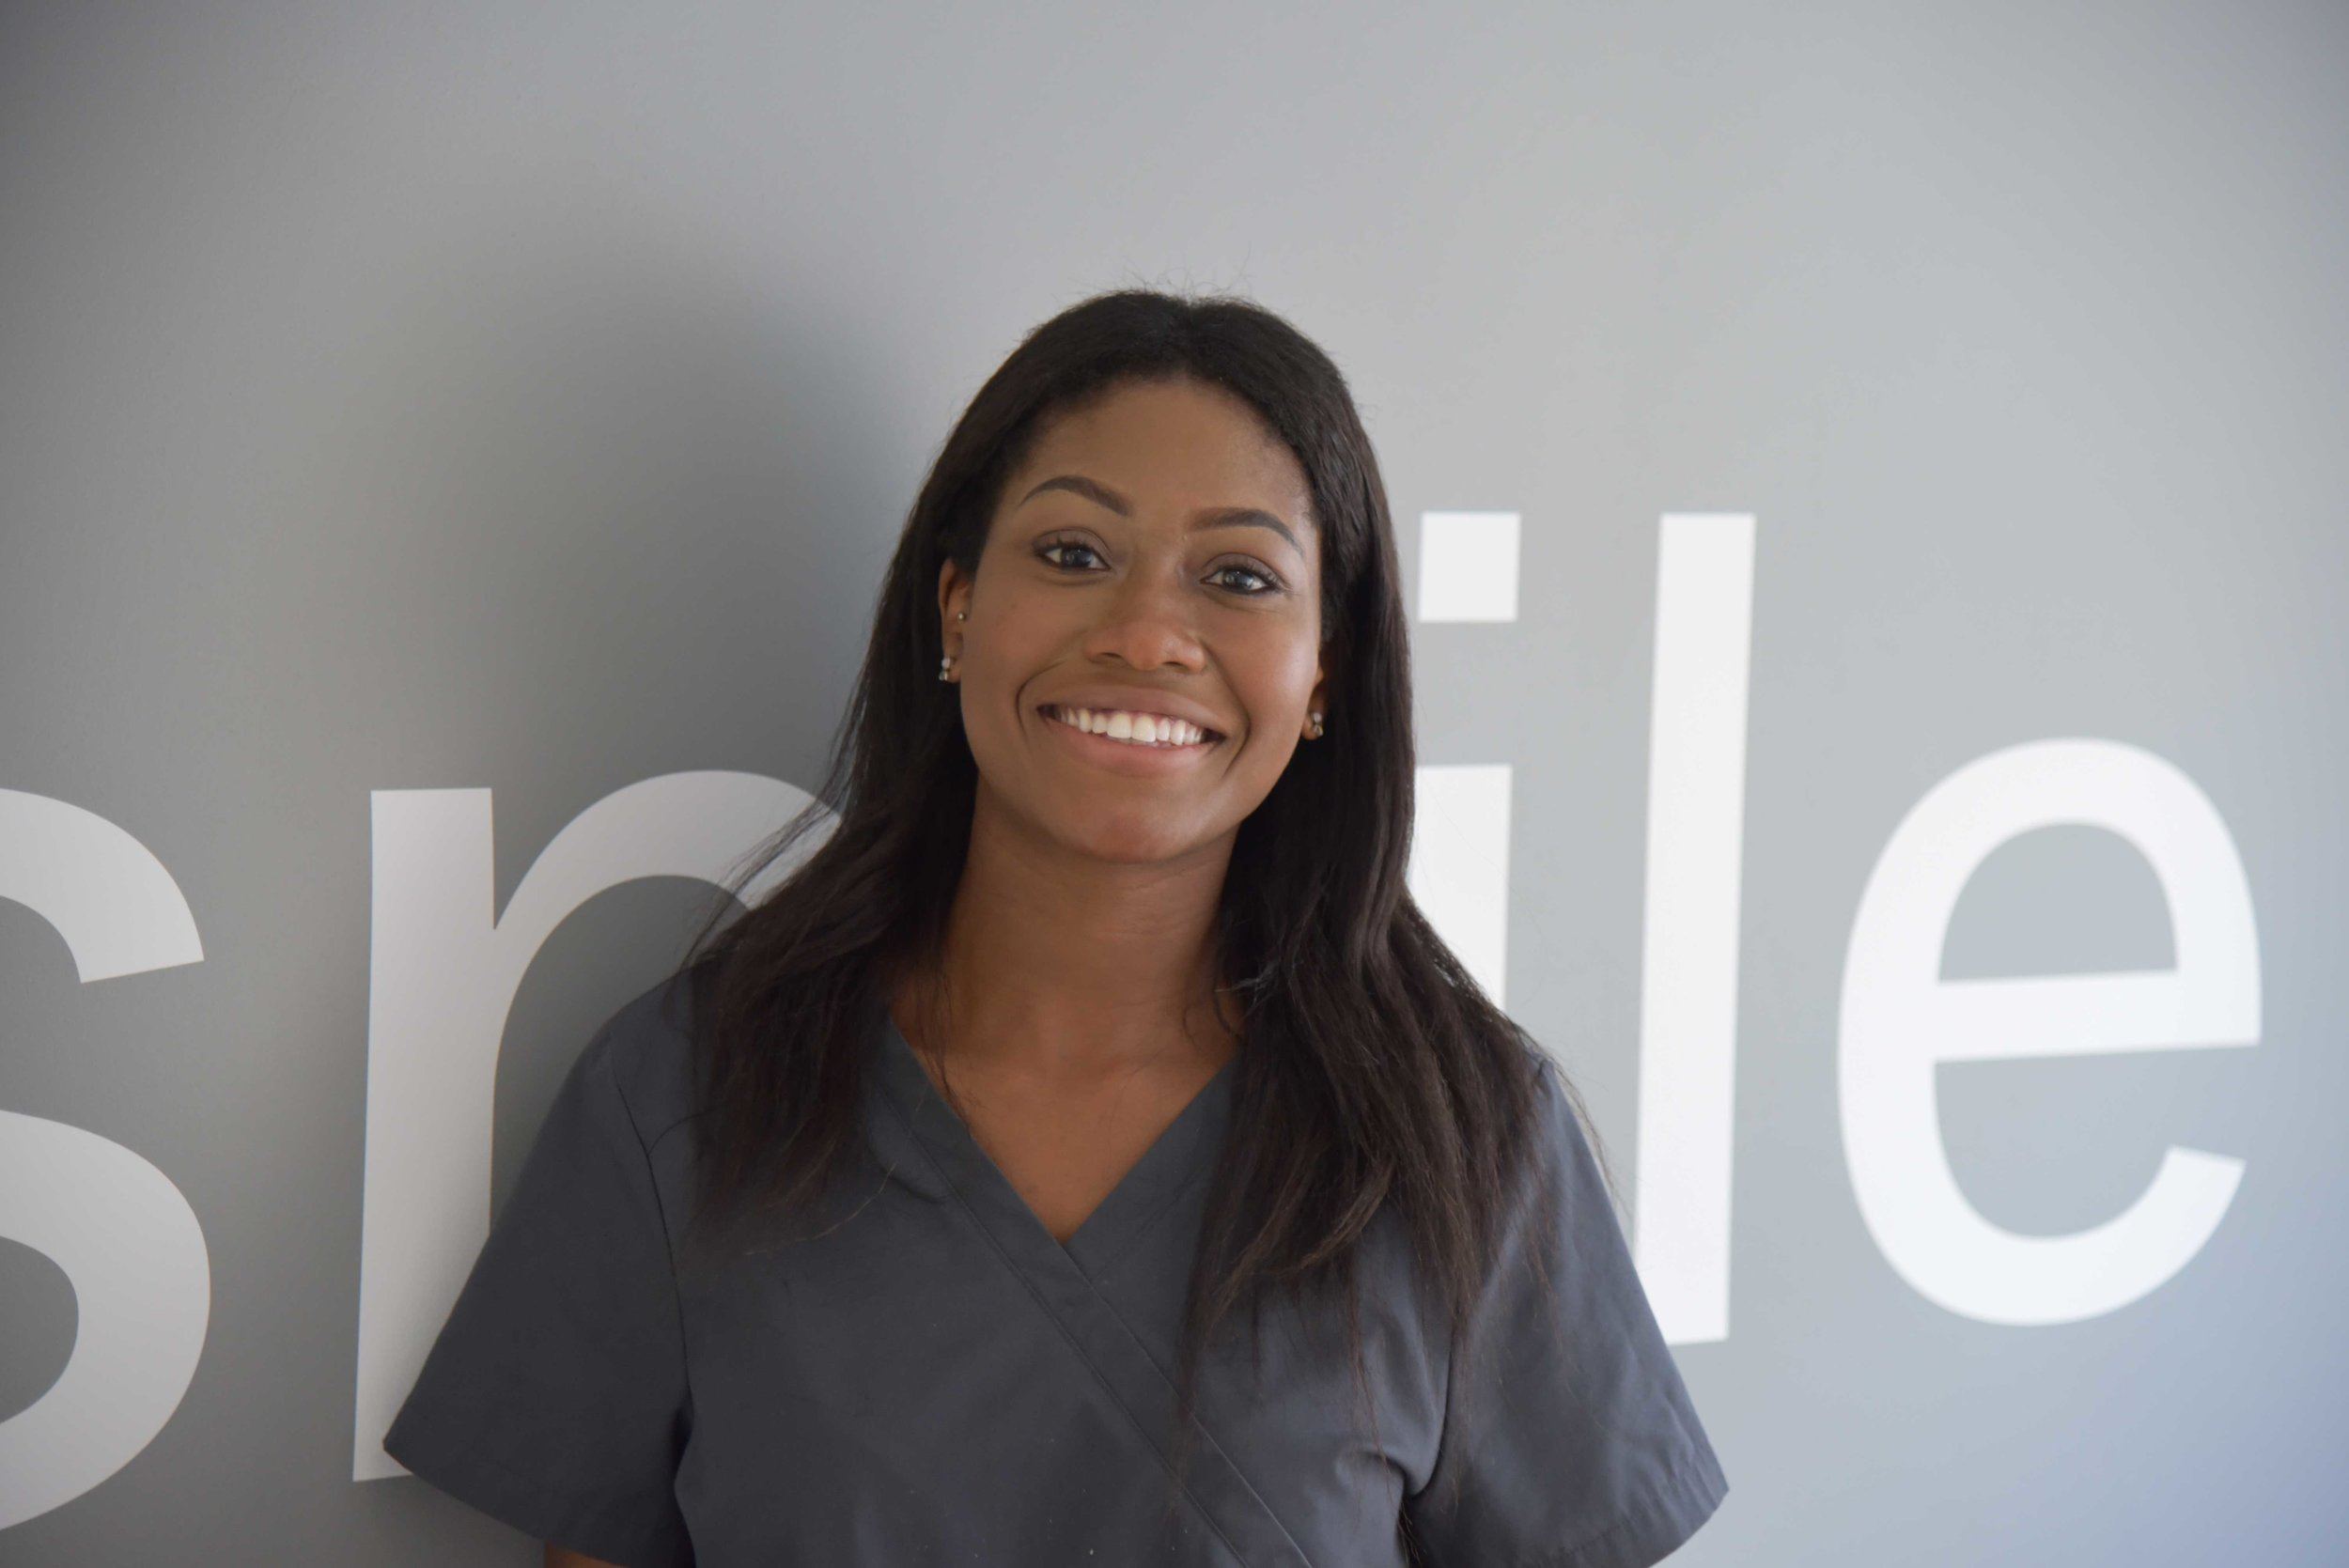 JENNY OTOO, DENTAL HYGIENIST, GDC No. 237683   FDsc Oral Health Science, University of Essex; Nat. Dip in Dental Nursing, NEBDN  Jenny is an experienced Dental Hygienist, having worked in private and mixed practices across the Home Counties before joining us at tooth. Jenny is all about quality, empathetic and partnership-based treatments and cares massively about working with patients to improve and maintain their oral health. Jenny is from London and always had a passion for dentistry. Her dental career started as a trainee nurse, she went on to become a Qualified Dental Nurse and then retrained as a Hygienist, graduating in Oral Health Science to become a Dental Hygienist in 2016.